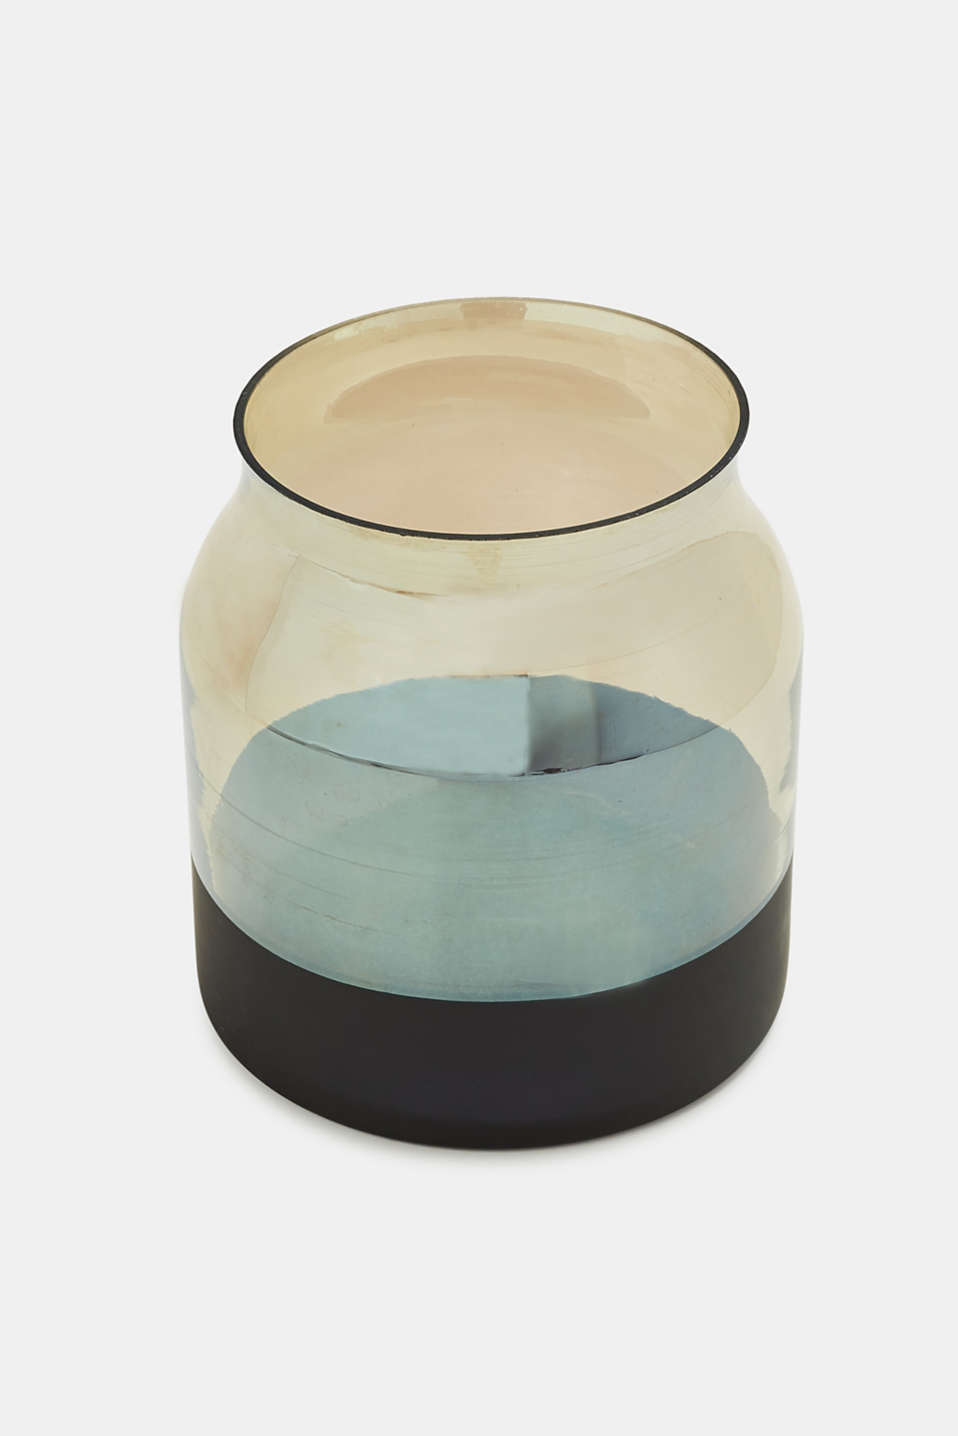 Esprit - Vase made of mirrored smoked glass